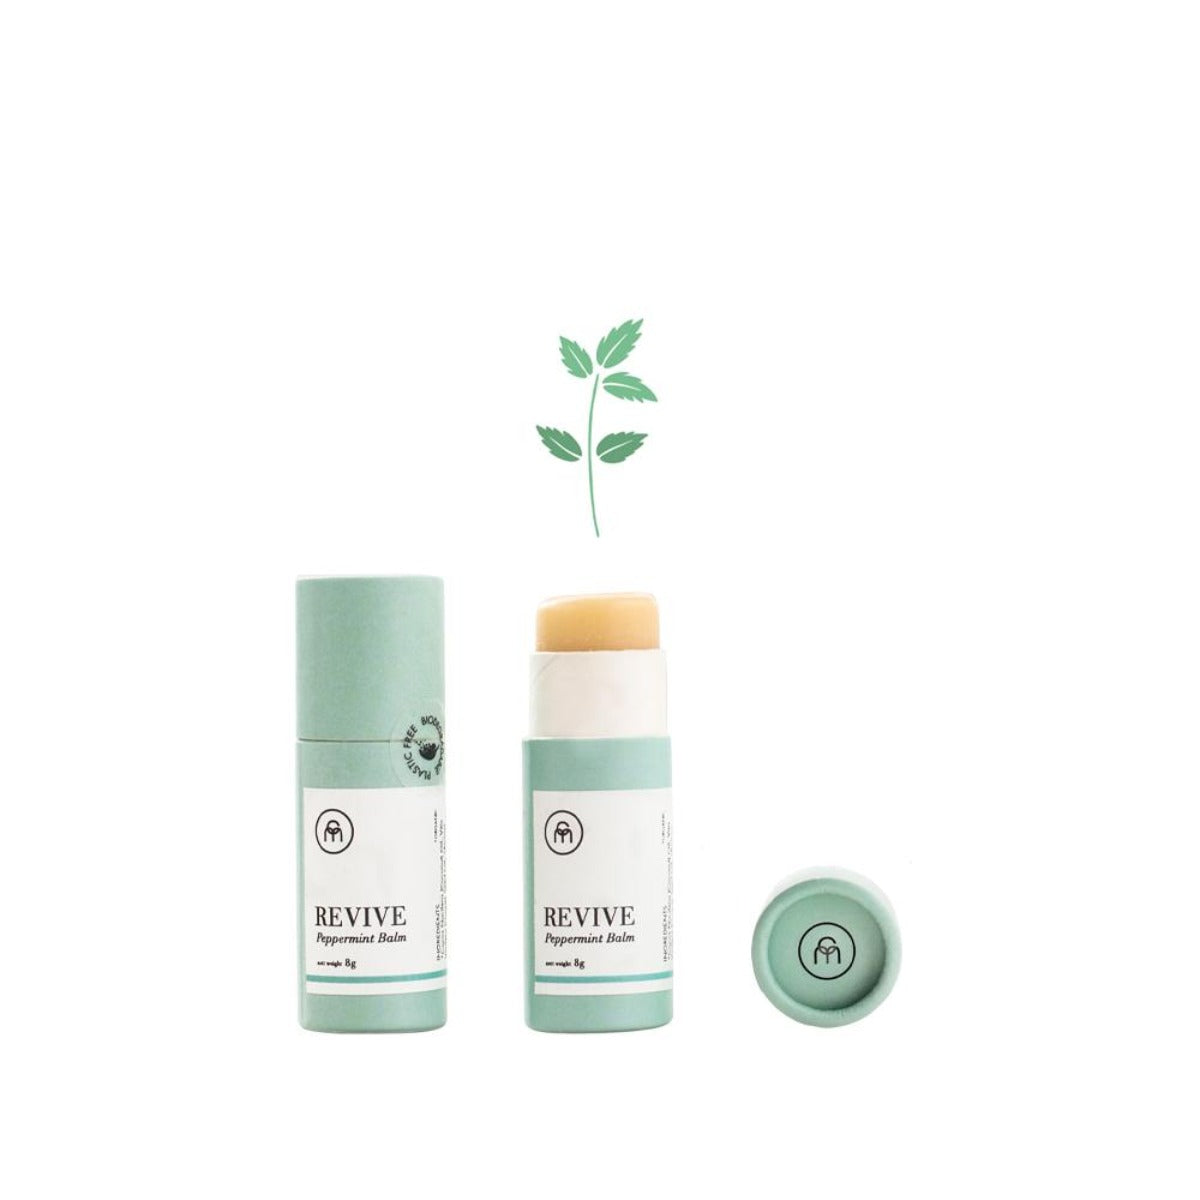 REVIVE Coconut oil lip balm